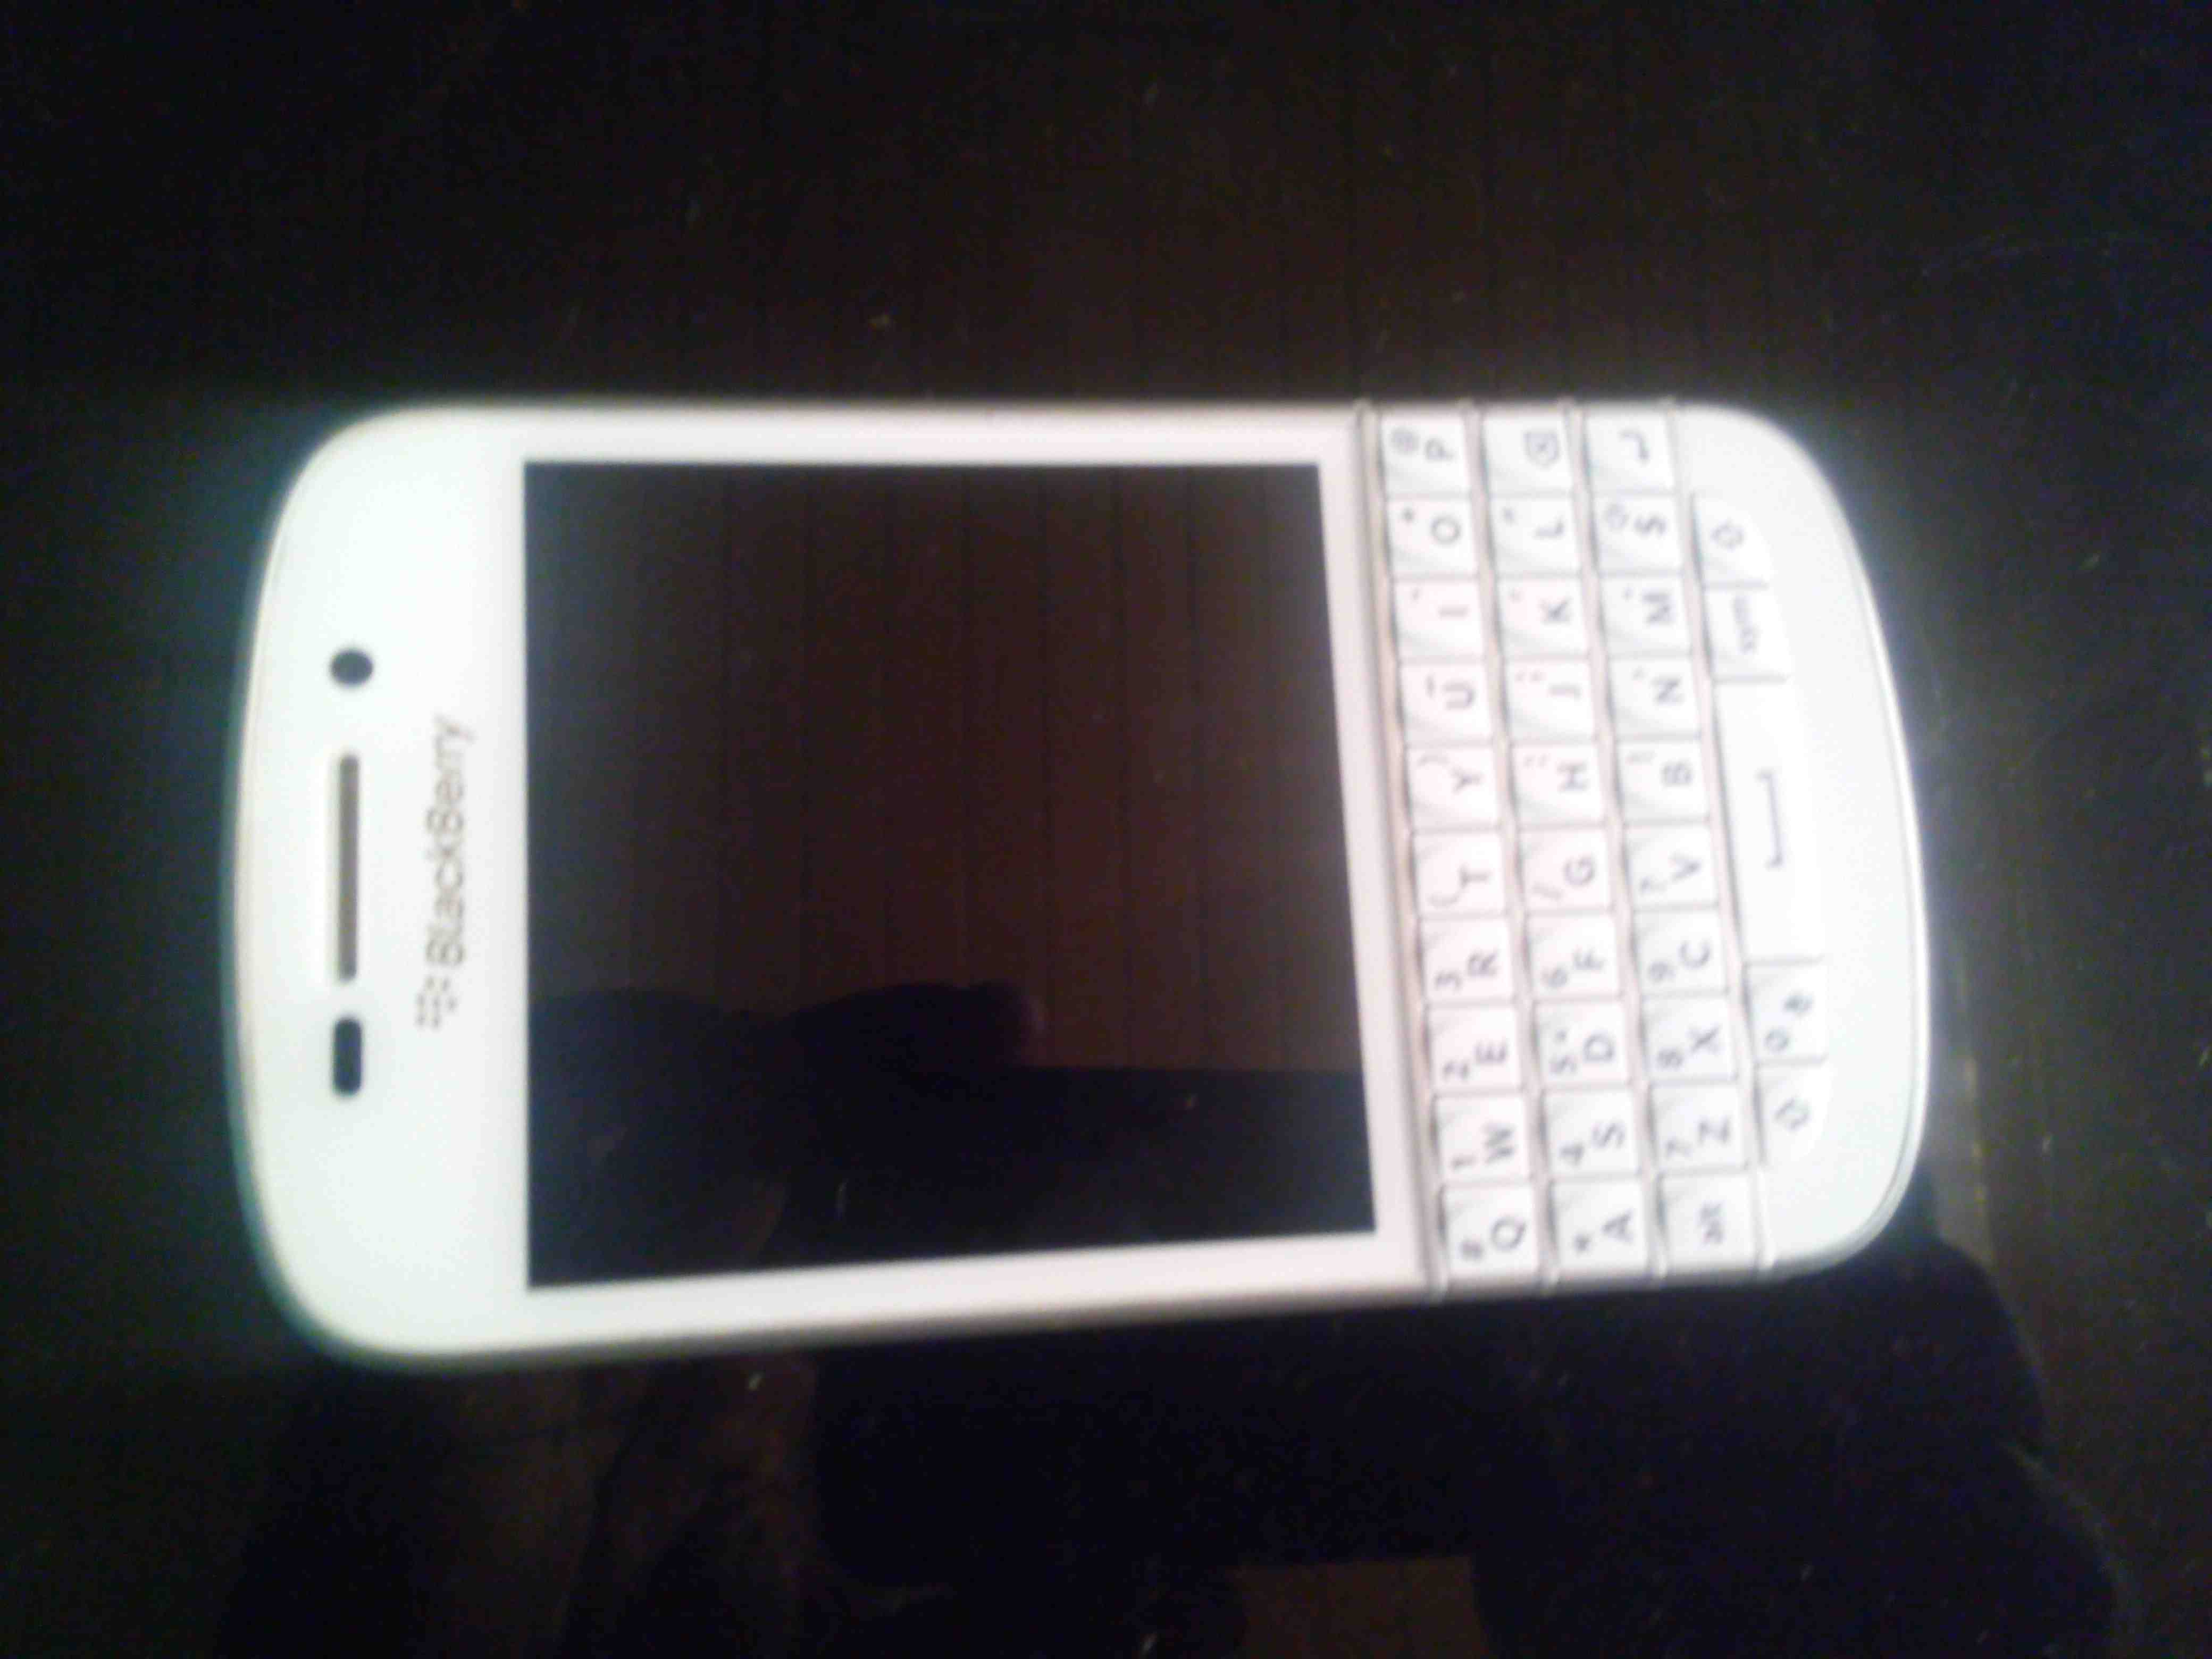 Blackberry Q10 For Sell At A Cheap Price Phone Internet Market Black I Have White N65000 Slightly Negotiable With All The Accessories And Pack Contact 08024745817 Or Bb Pin 7c5eeec9 If